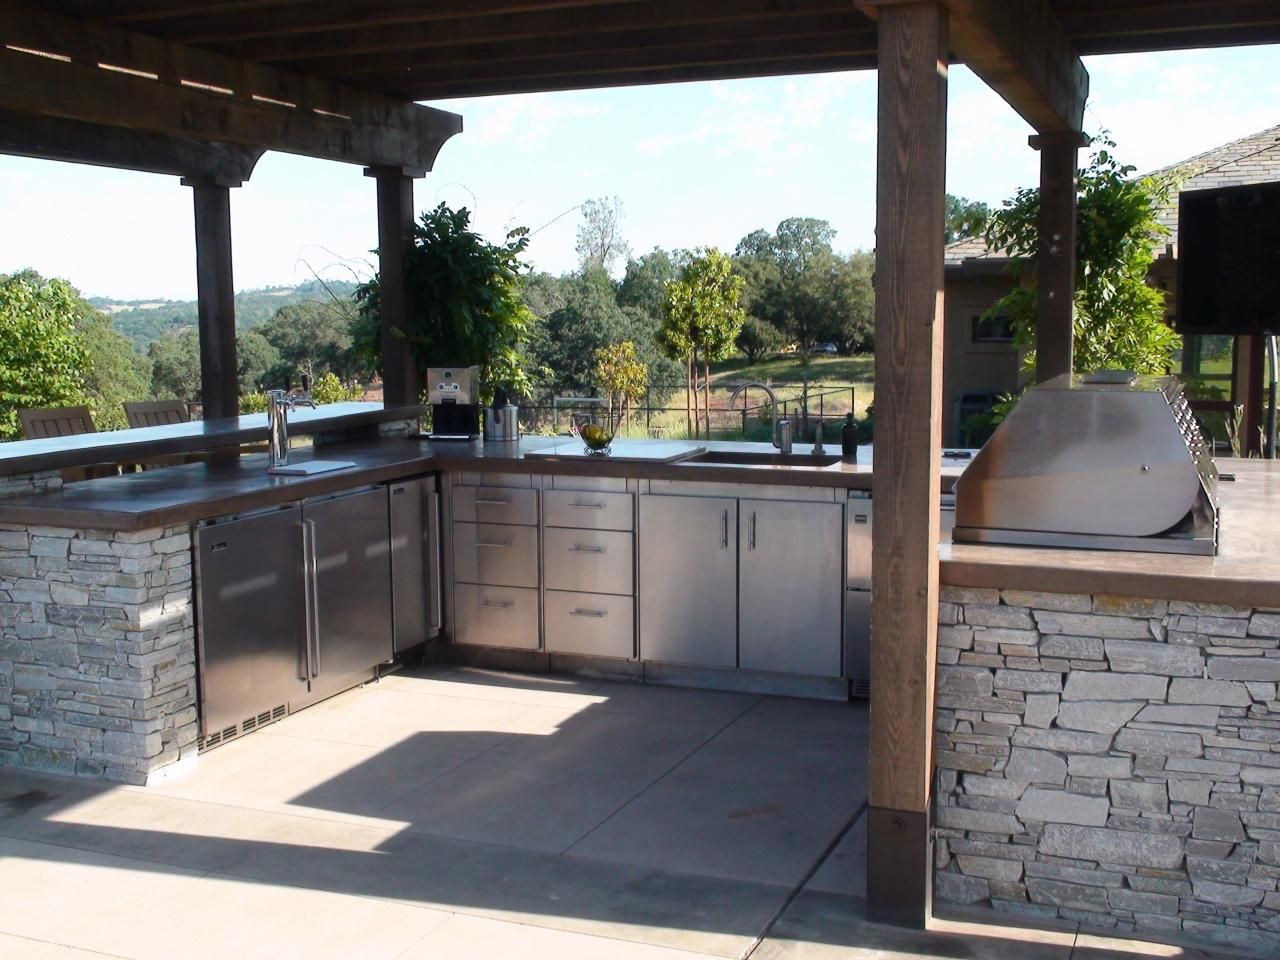 Pictures of Outdoor Kitchen Design Ideas & Inspiration | Hgtv, Deck ...